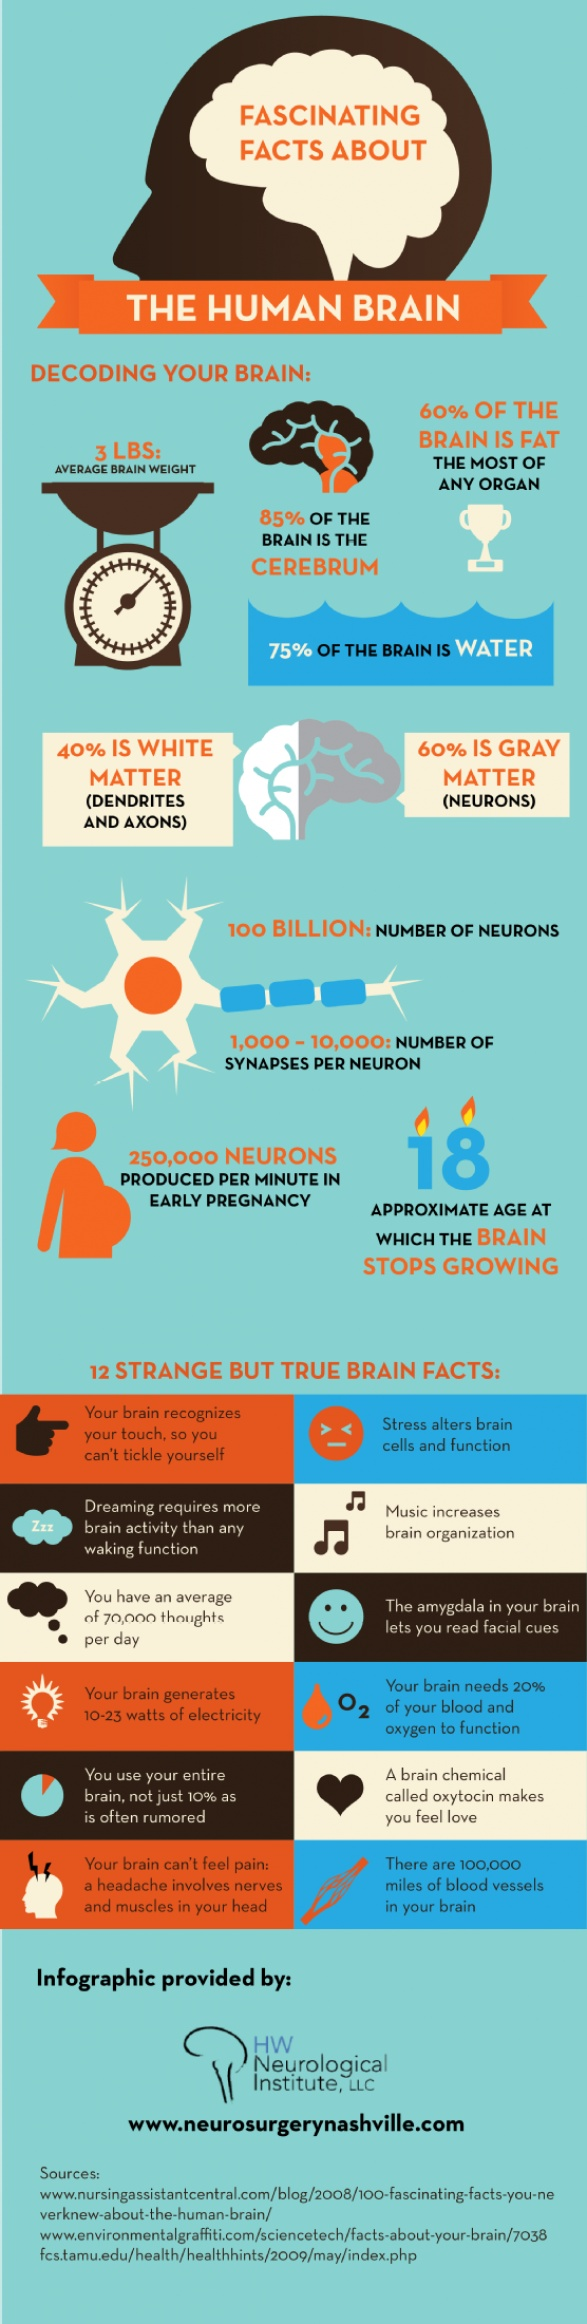 fascinating-facts-about-the-brain.jpg